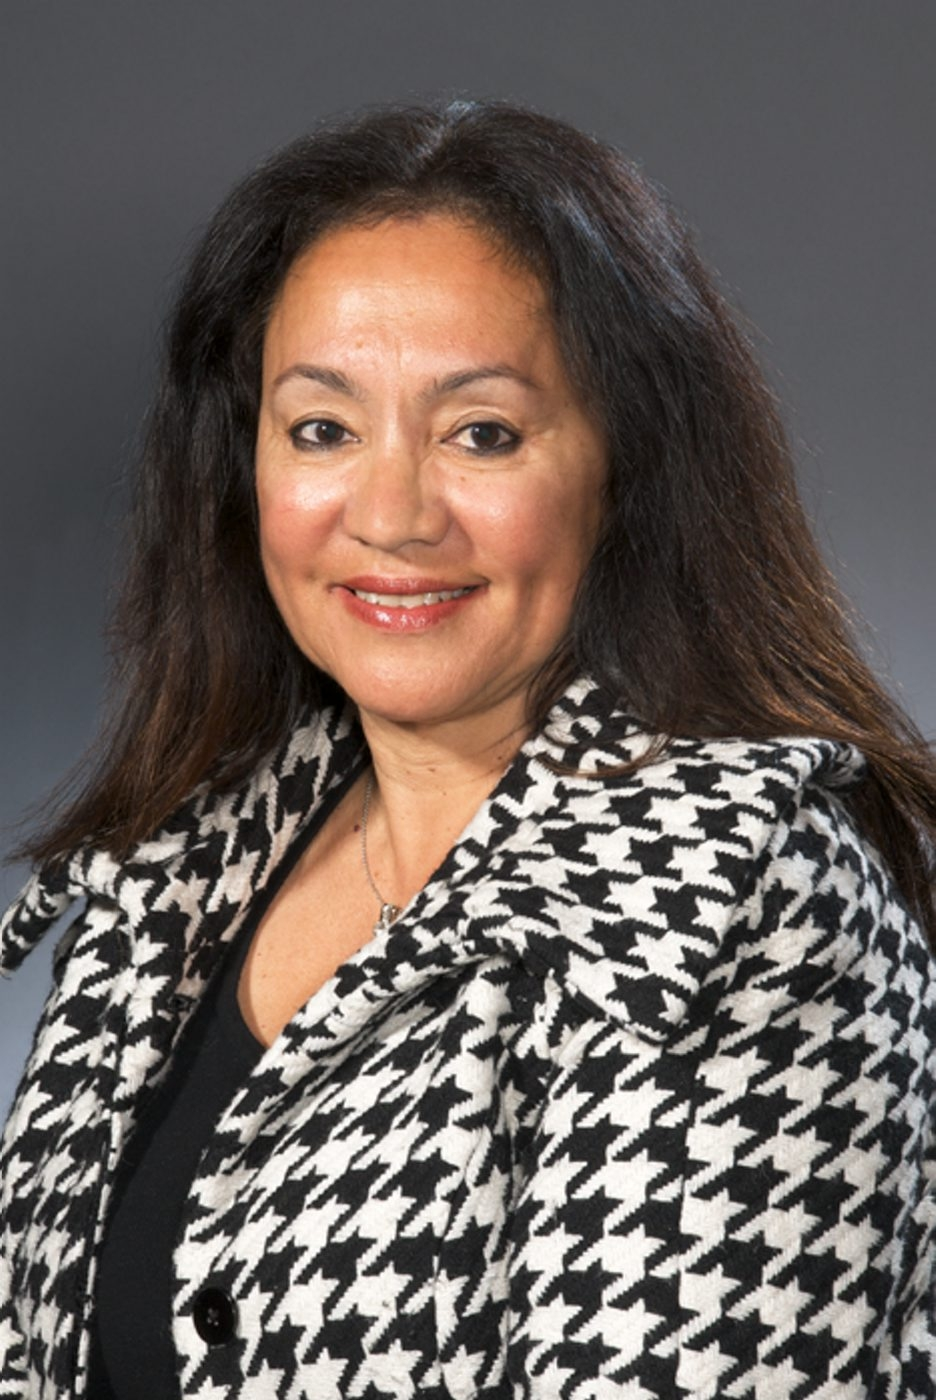 Betty A. Rosa is expected to be named chancellor of the state Board of Regents.